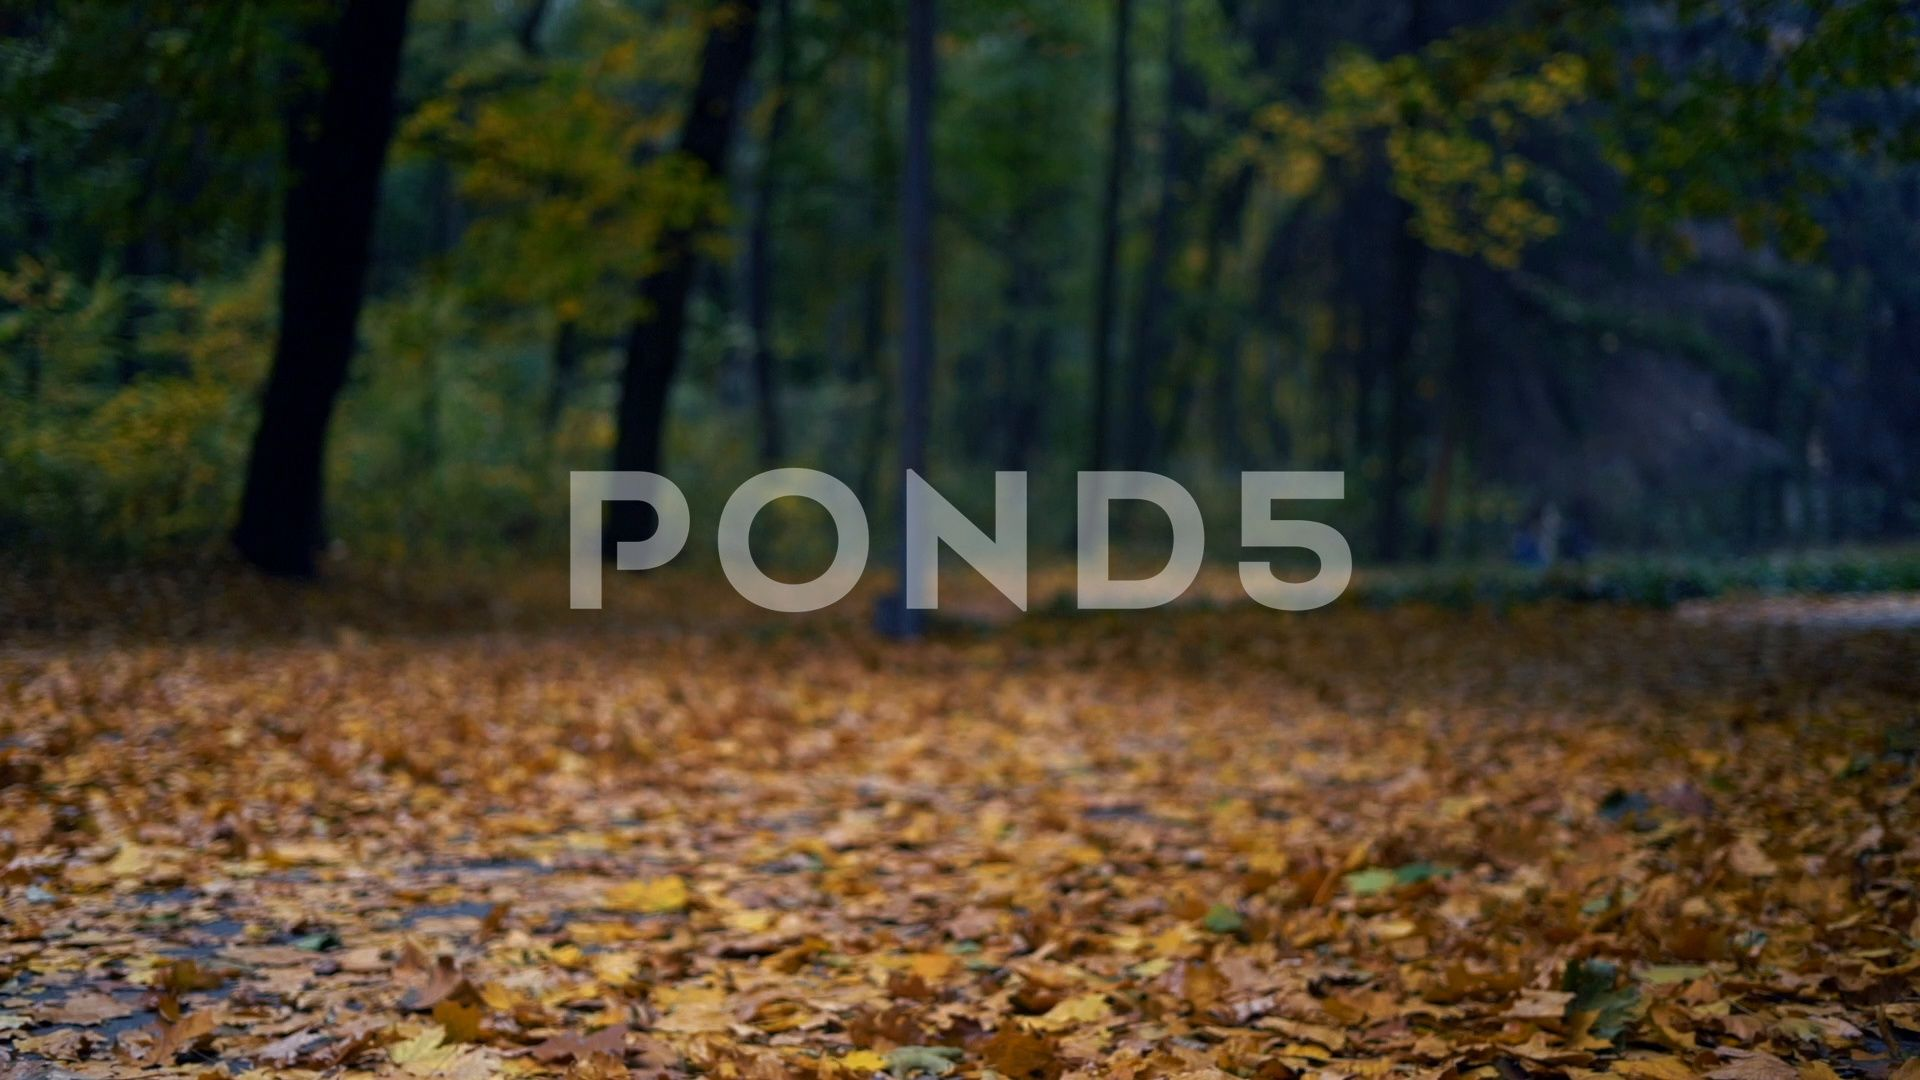 Autumn leaves falling in slow motion Stock Footage #AD ,#falling#leaves#Autumn#slow #autumnleavesfalling